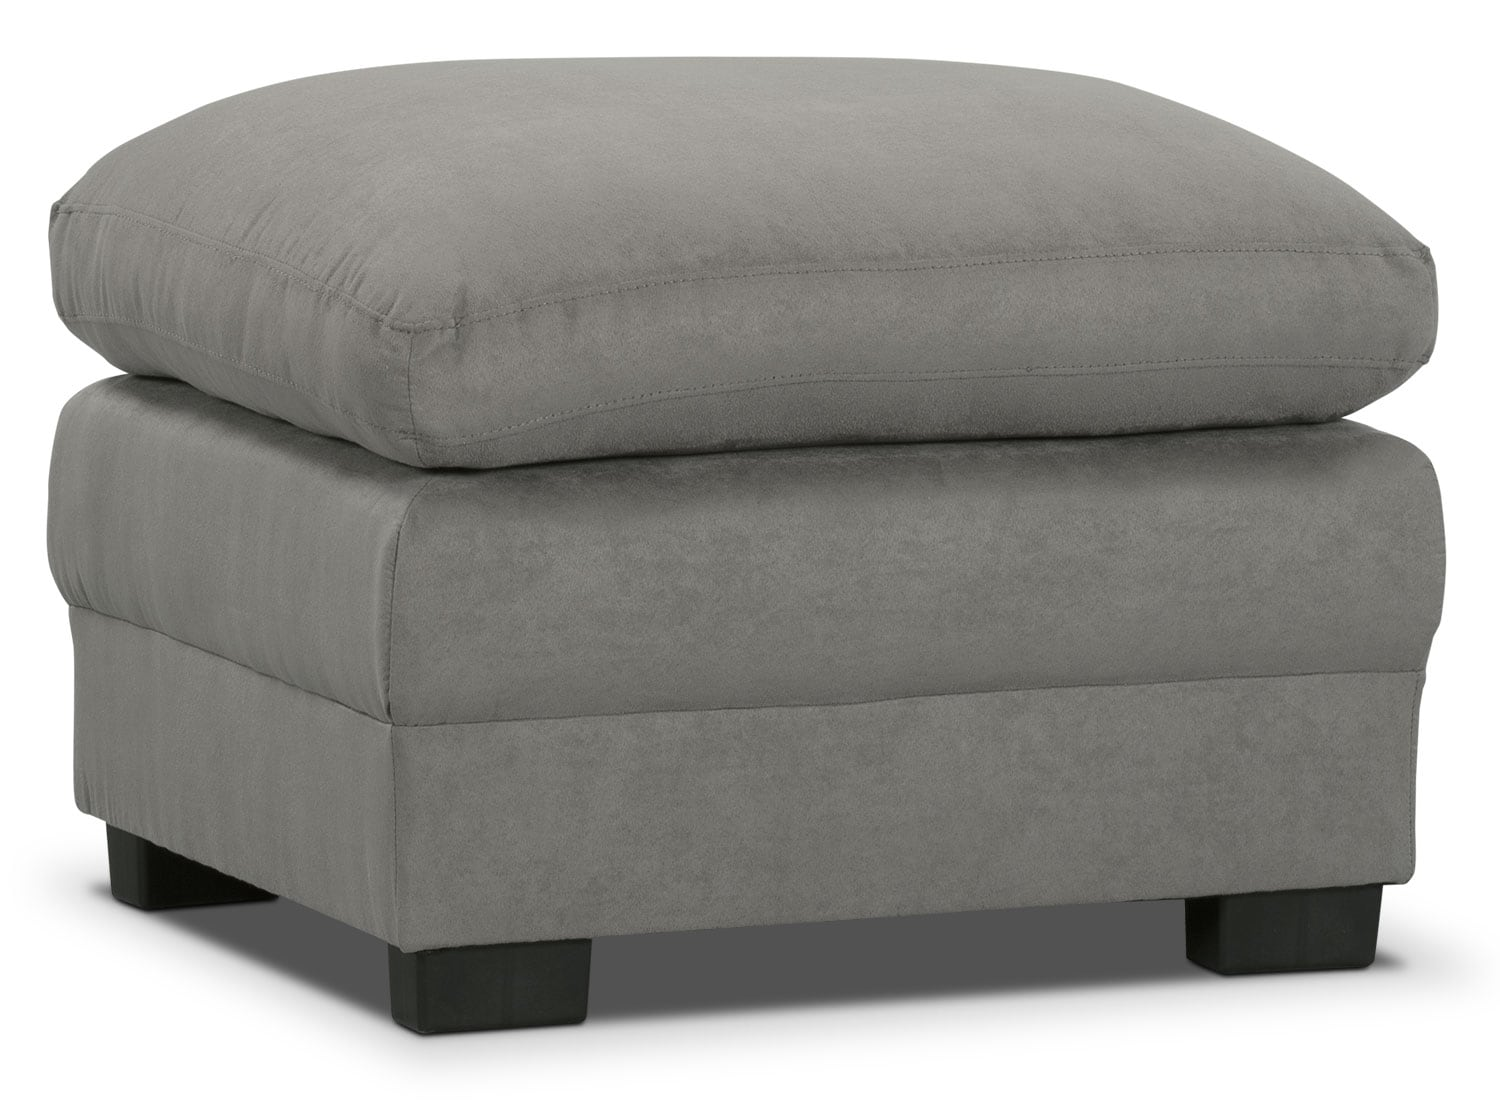 Living Room Furniture - Peyton Microsuede Ottoman - Grey